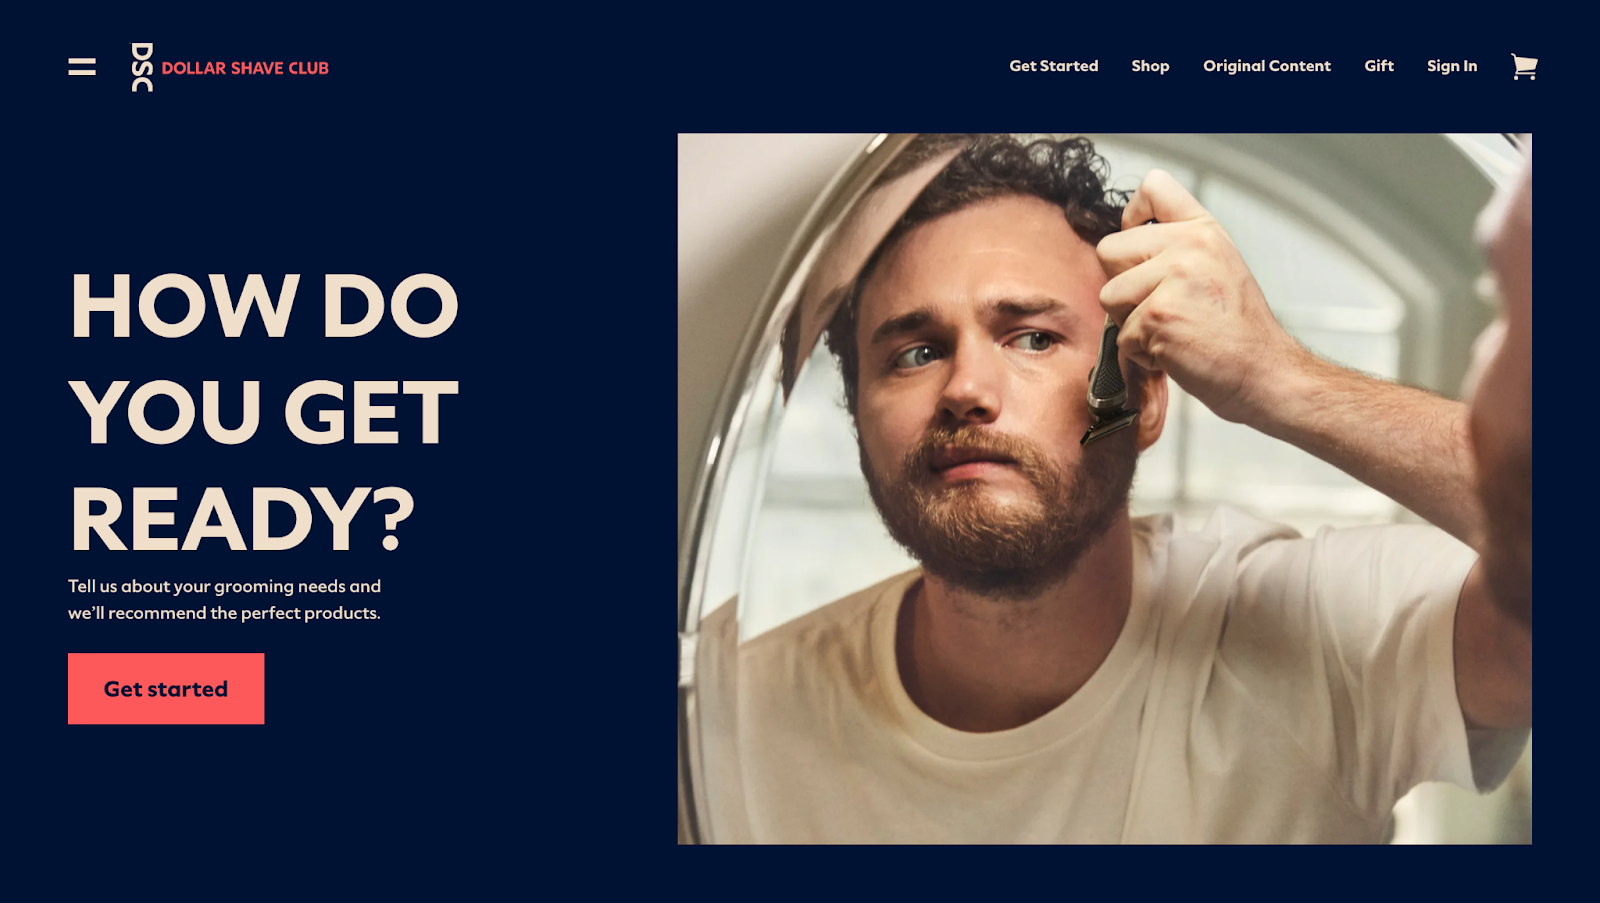 Dollar Shave Club home page